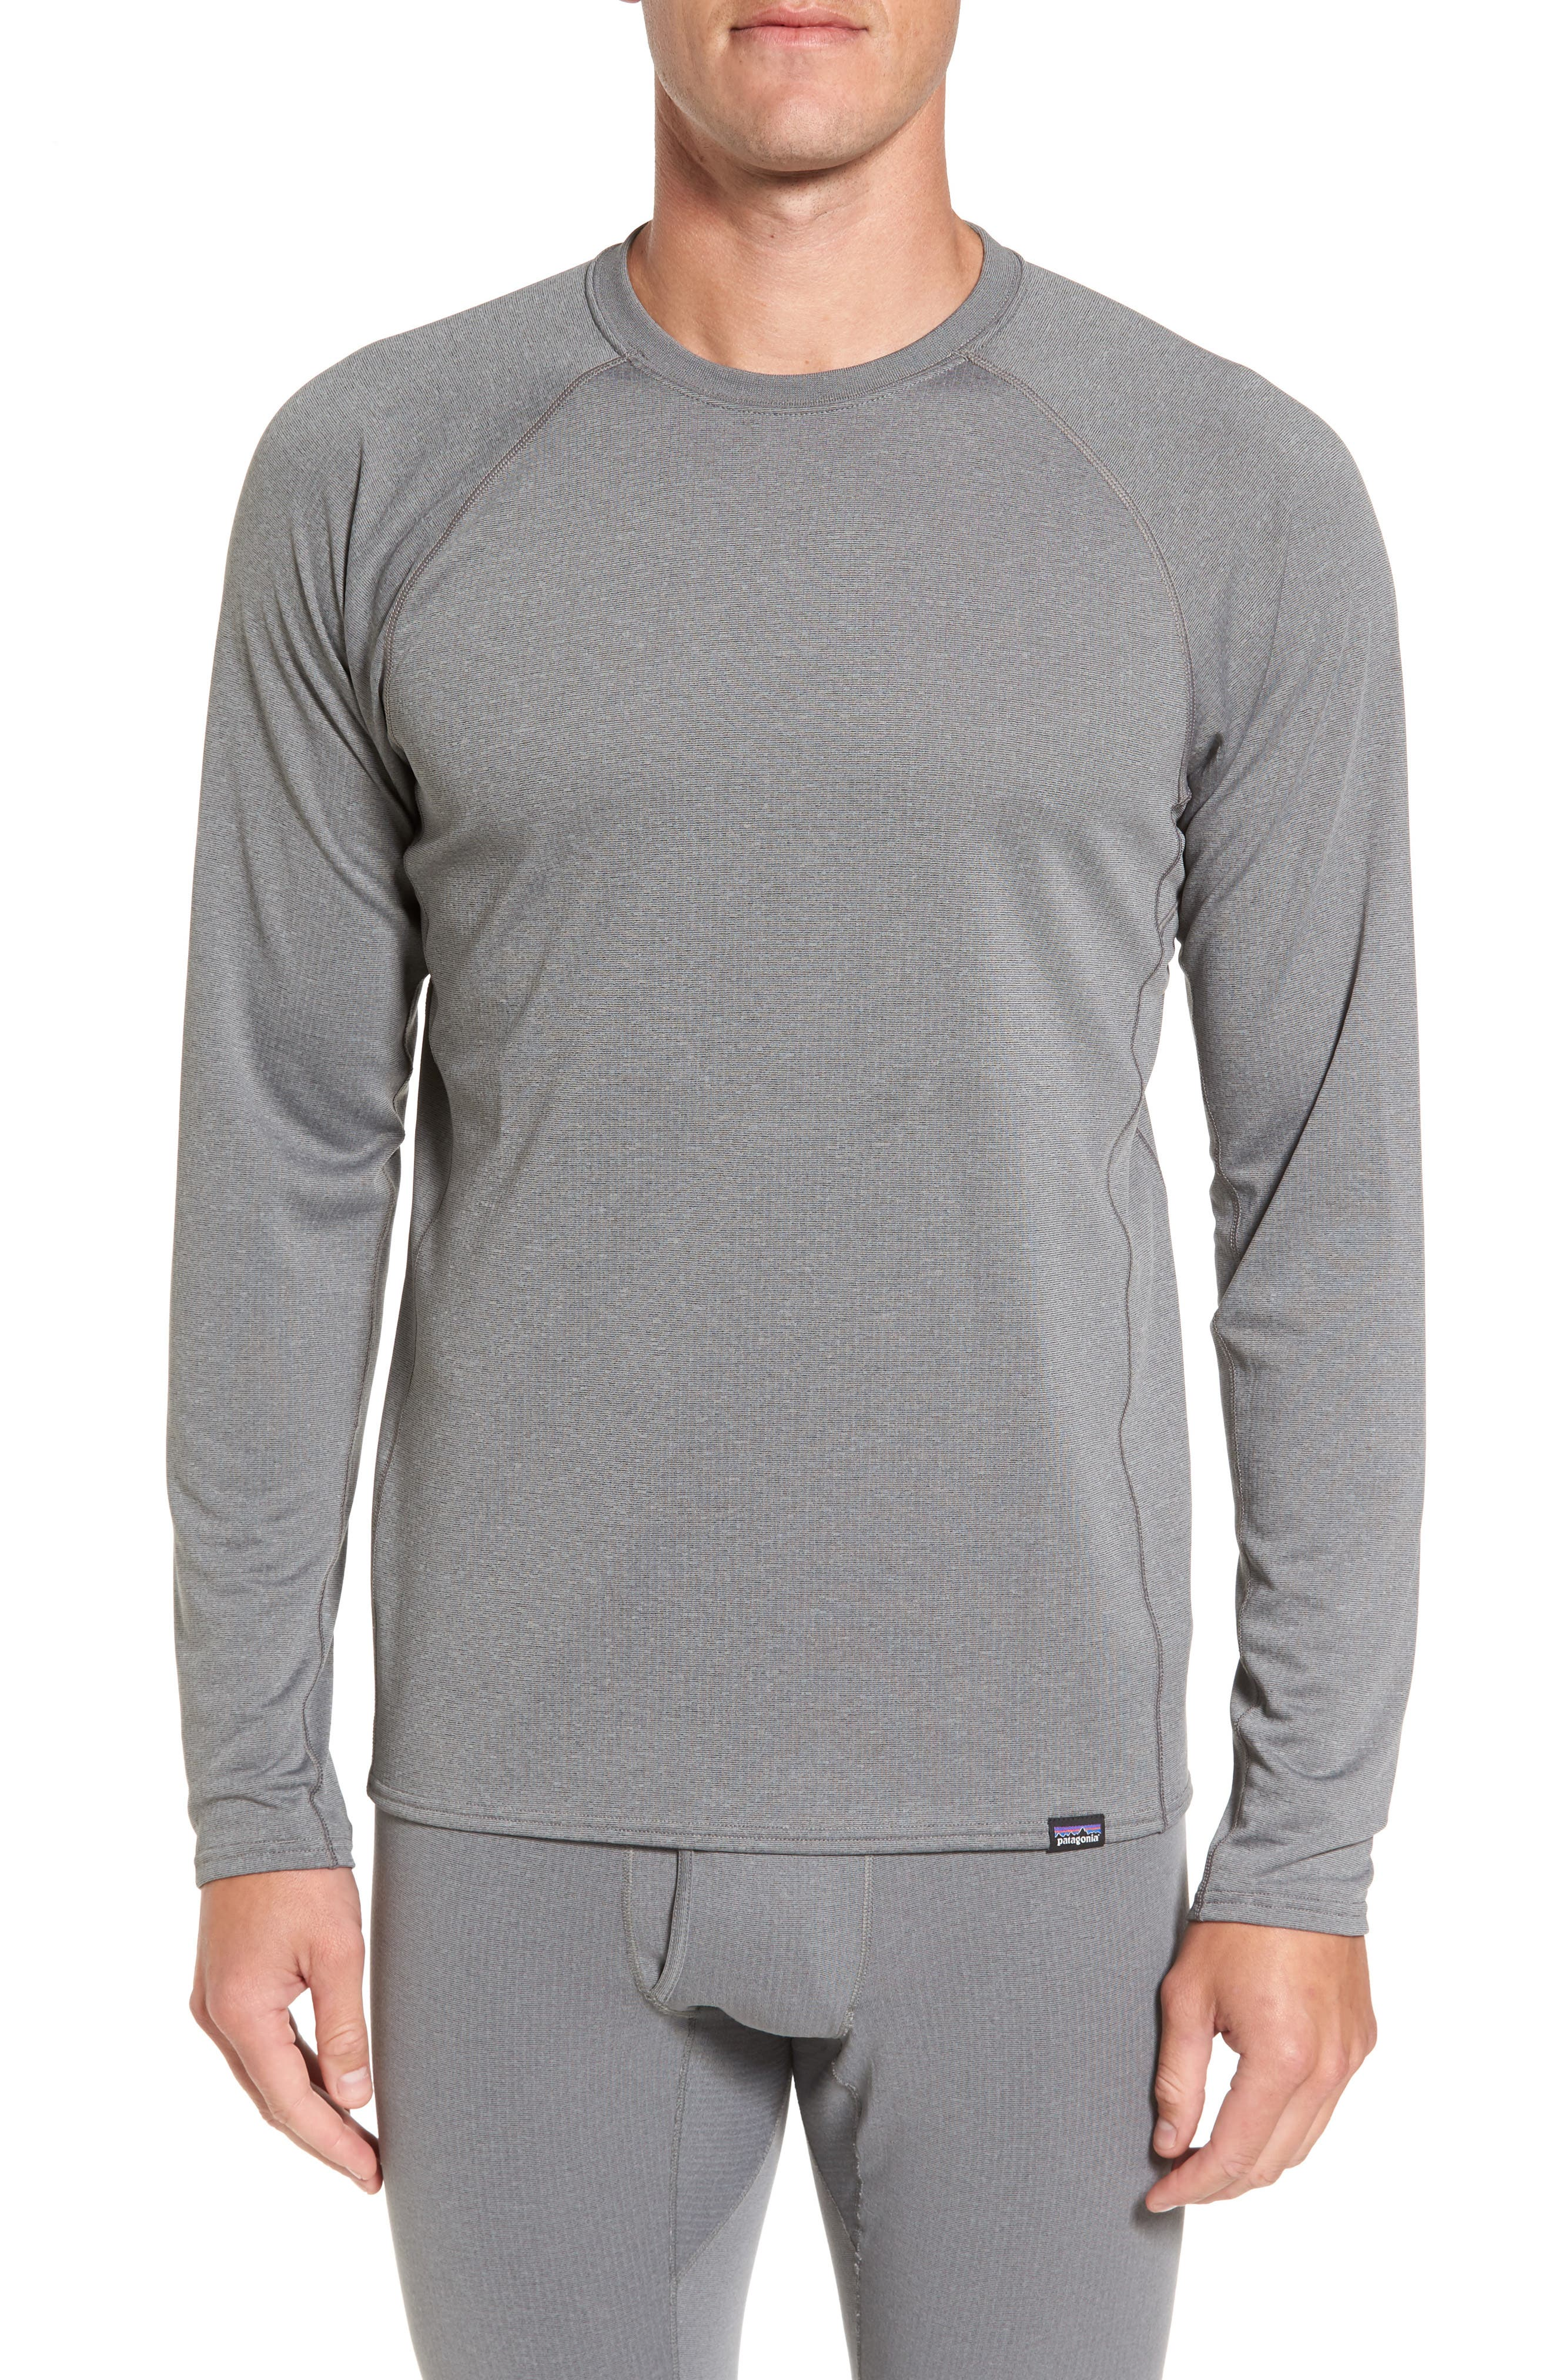 Capilene Midweight Base Layer T-Shirt,                         Main,                         color, Feather Grey X-Dye